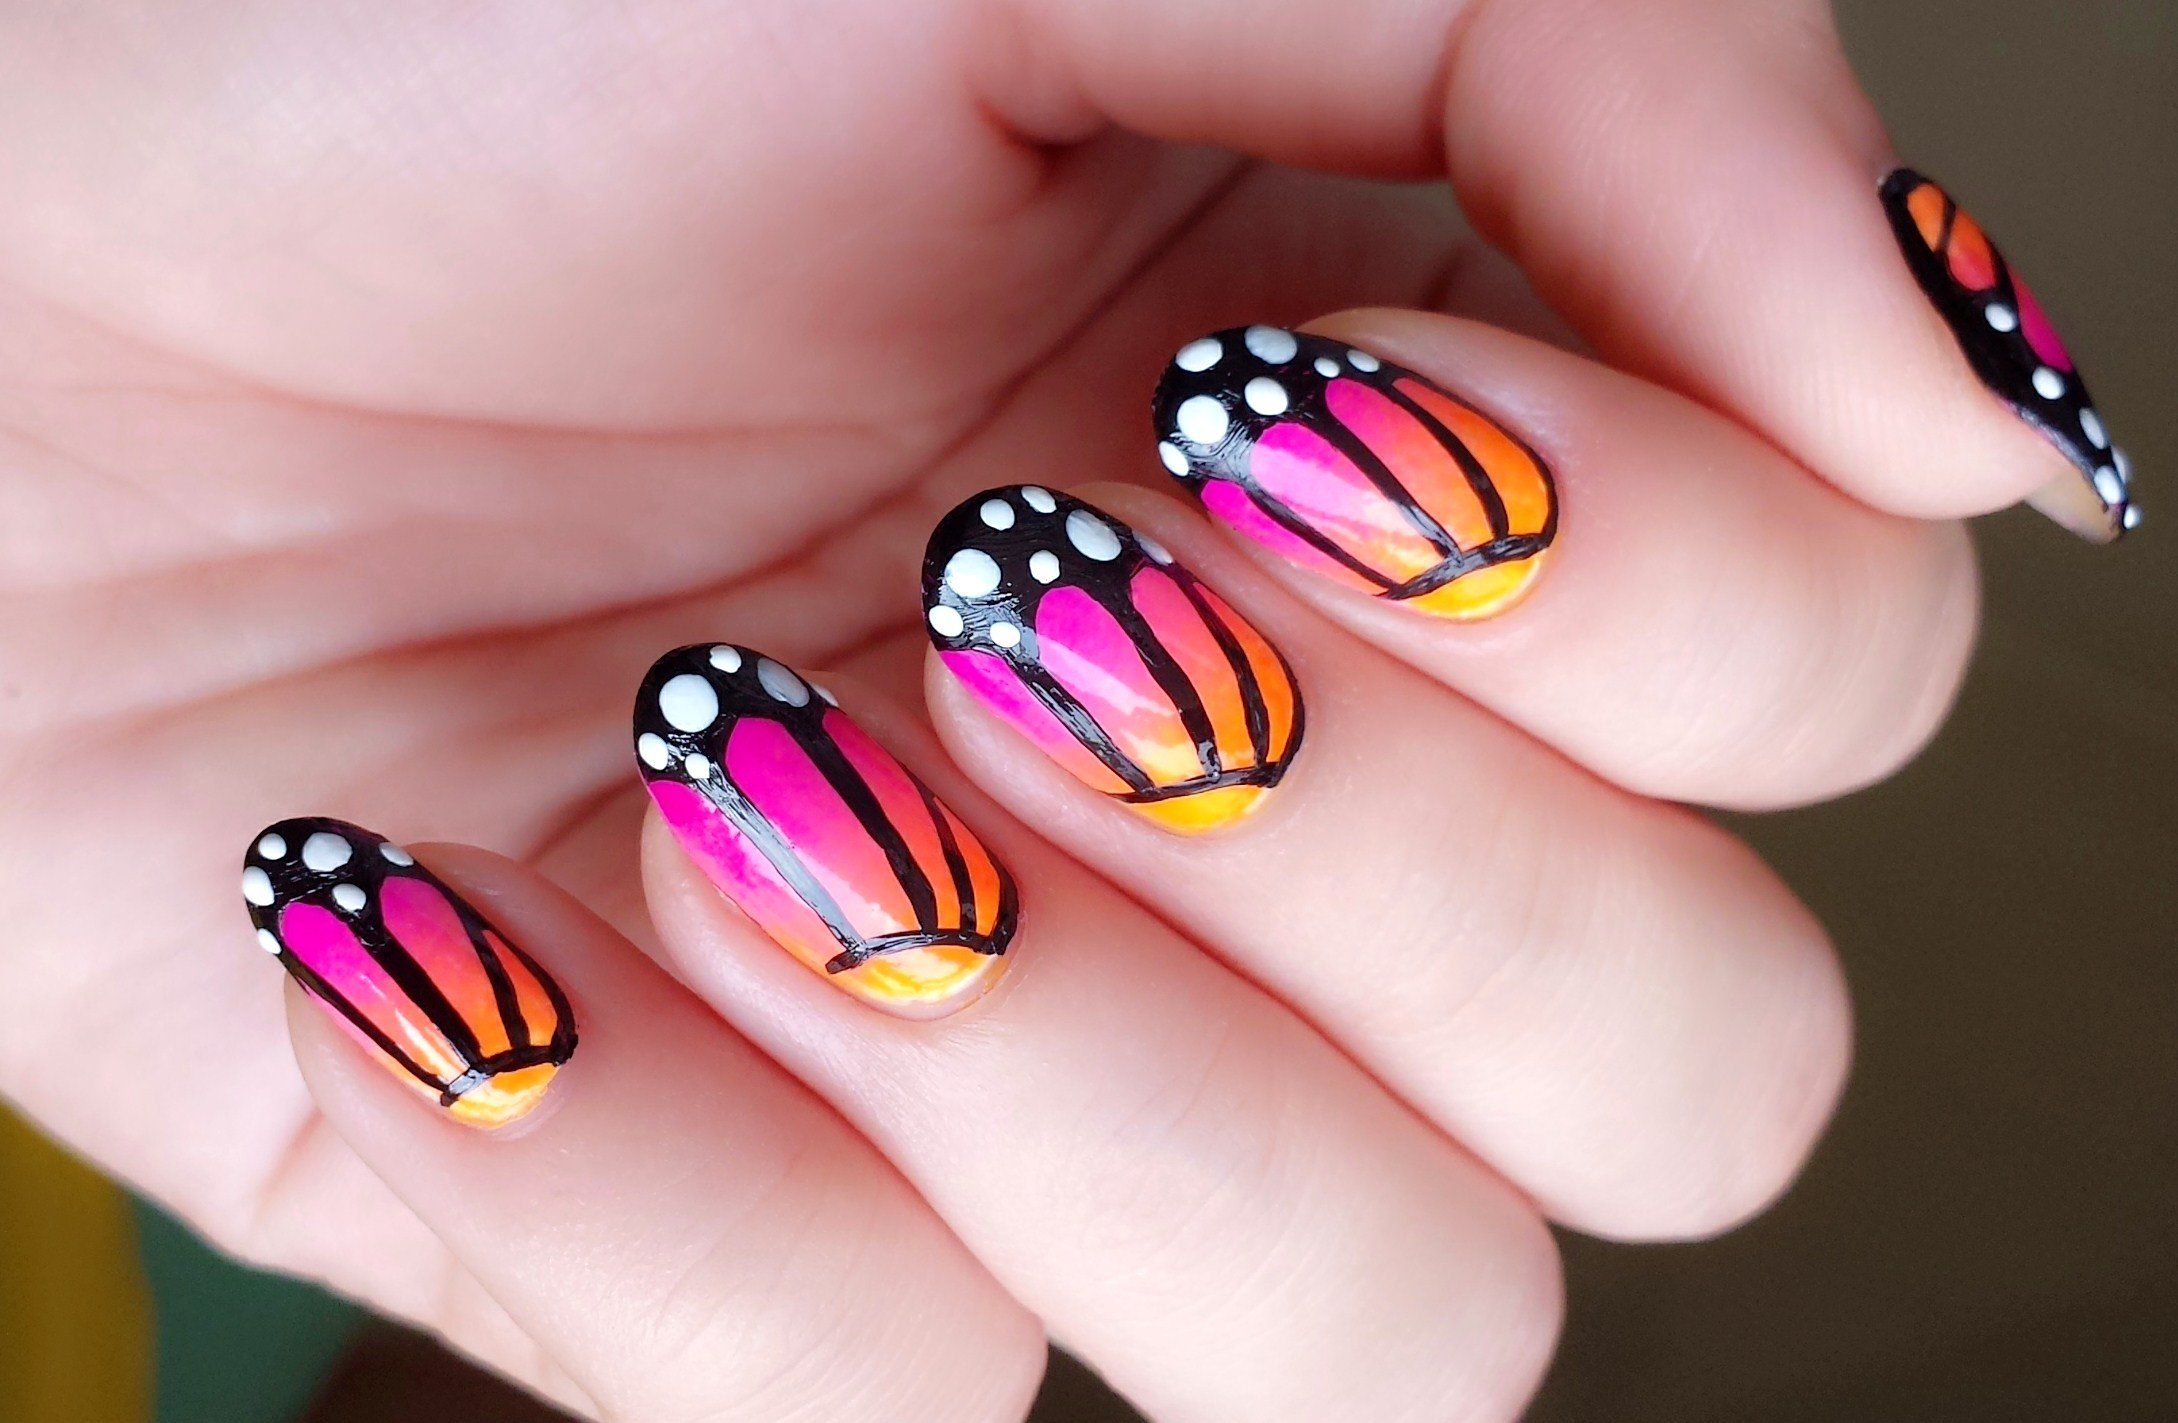 Nail Art Ideas: Top 30 Cute Gel Nails Designs